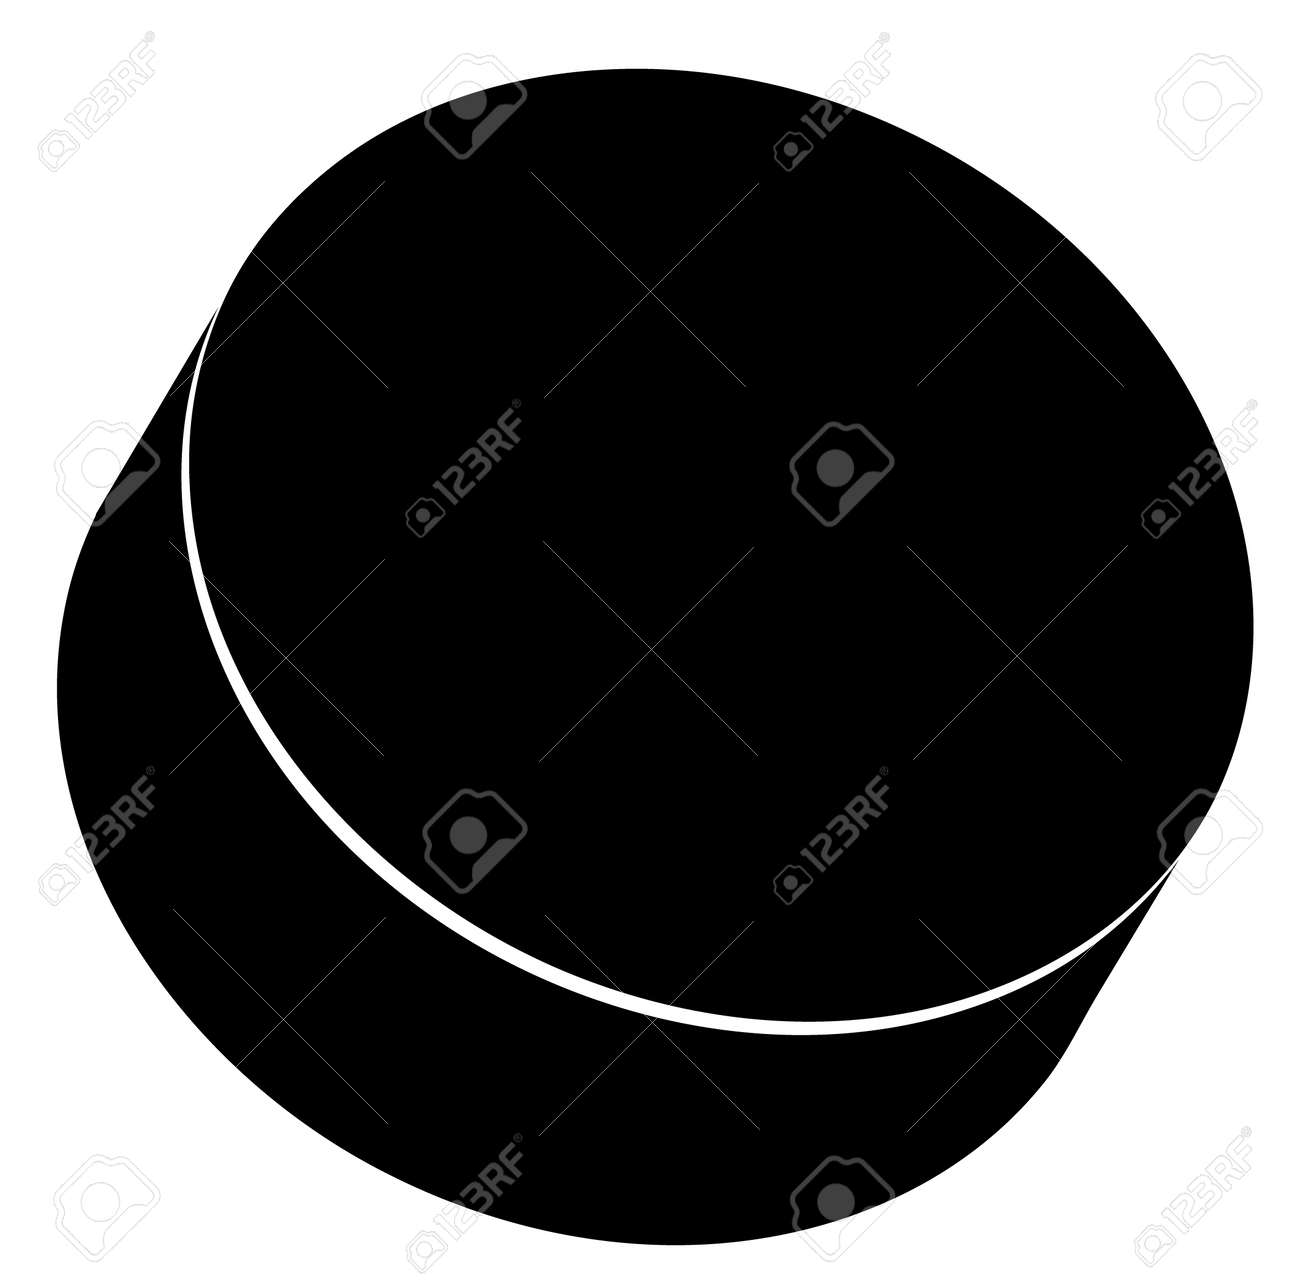 outline of a black hockey puck vector royalty free cliparts rh 123rf com hockey puck clipart black and white Cartoon Hockey Puck